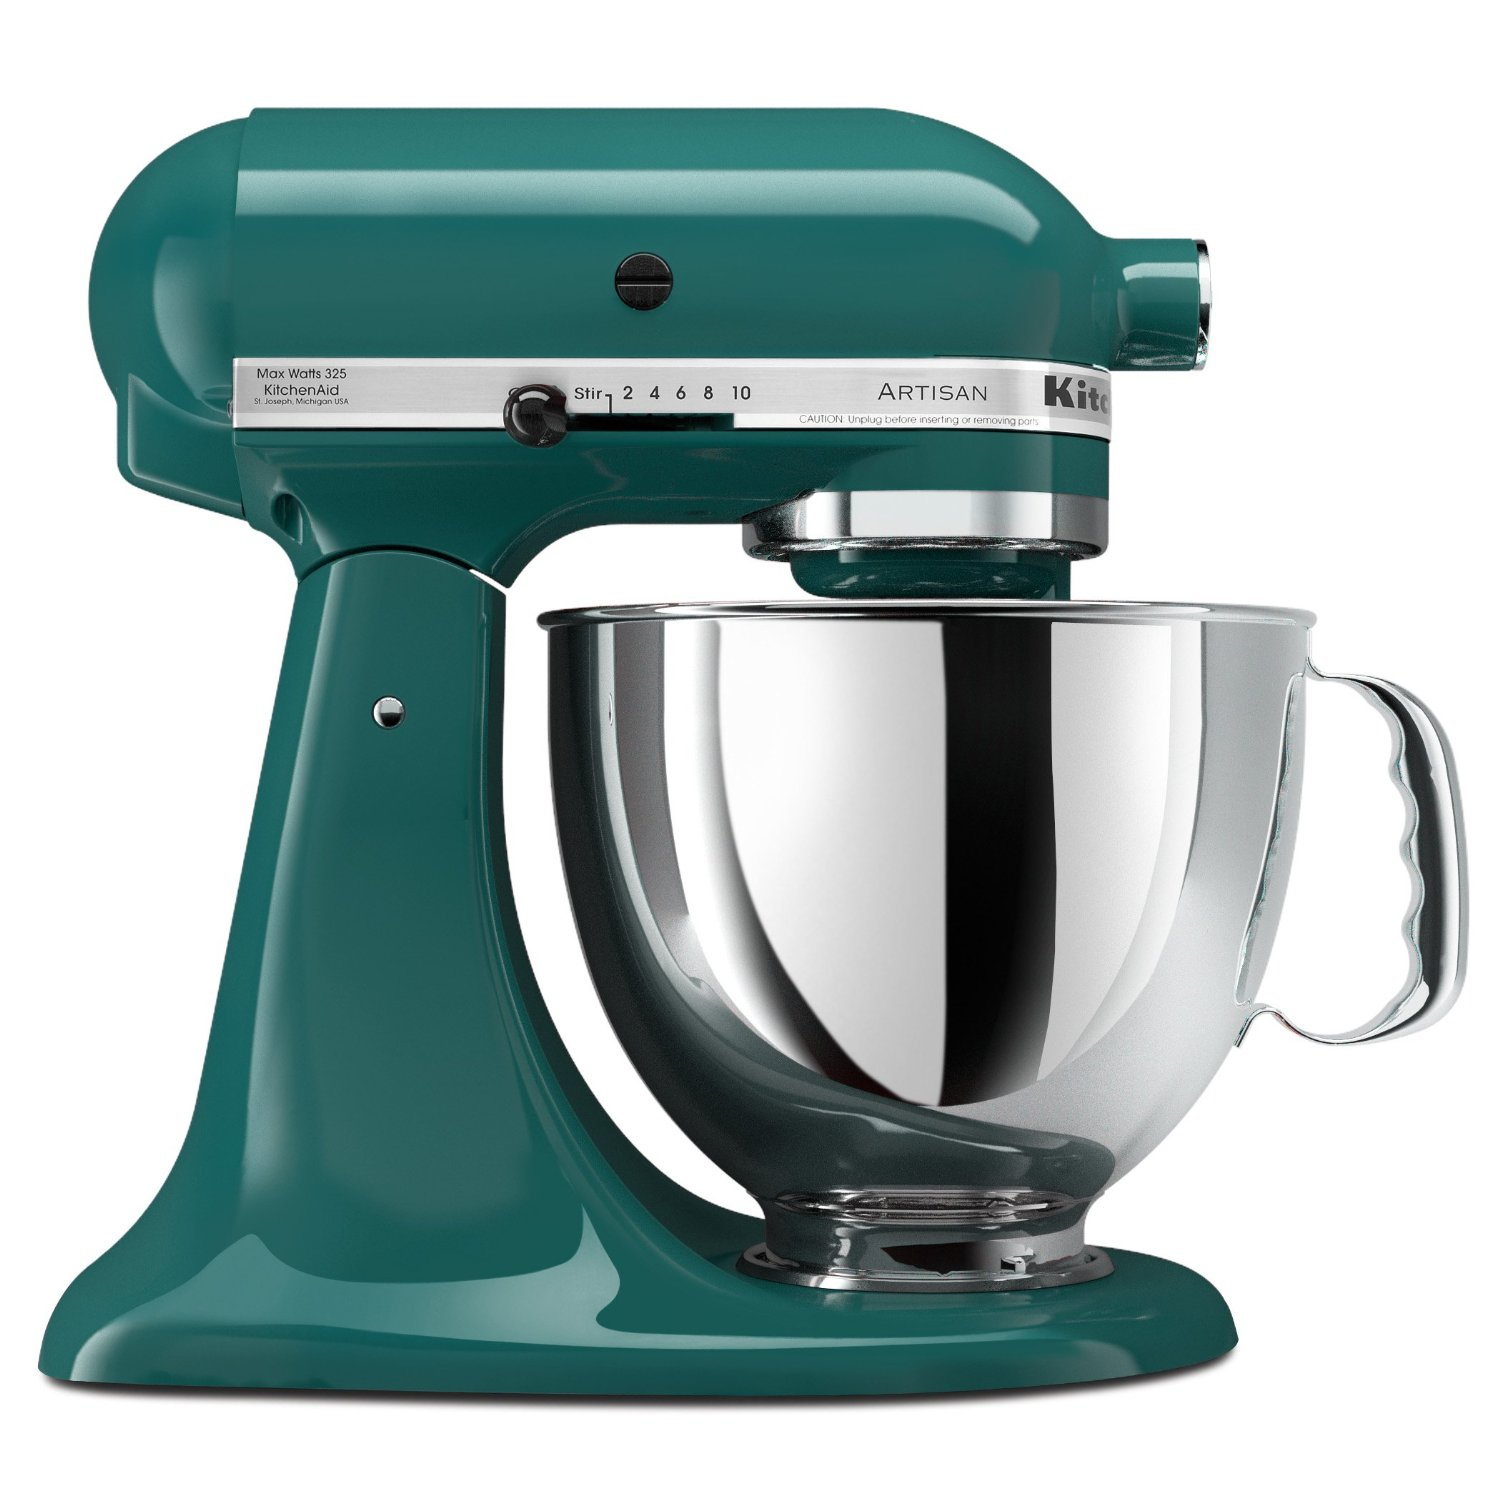 Teal KitchenAid Artisan Mixer (Bay Leaf)